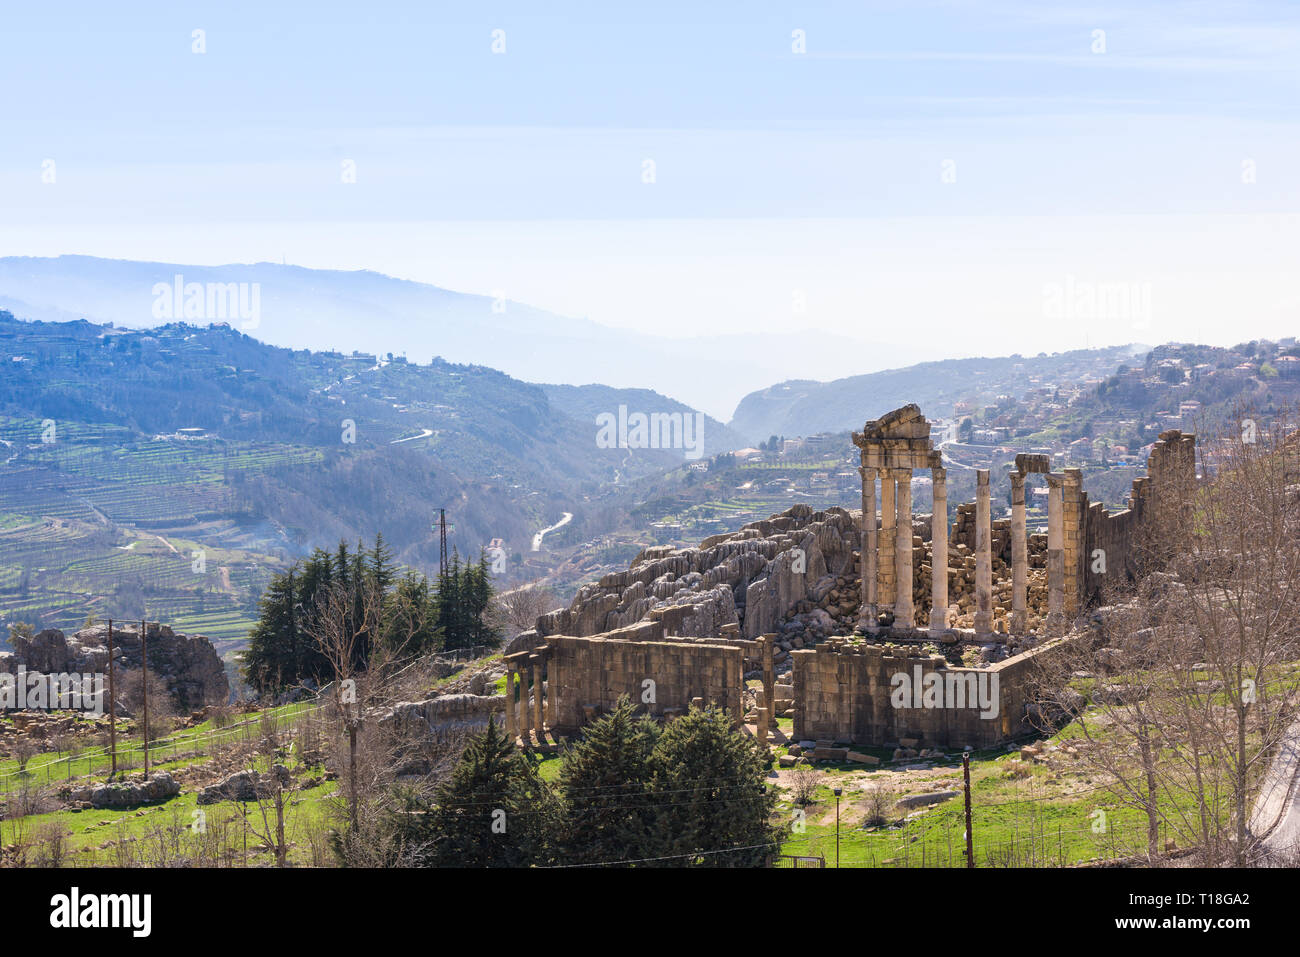 A Roman temple dedicated to Zeus Baal and a byzantine basilica sit at the beginning of the Nahr al Kalb valley on the Mount Lebanon. - Stock Image